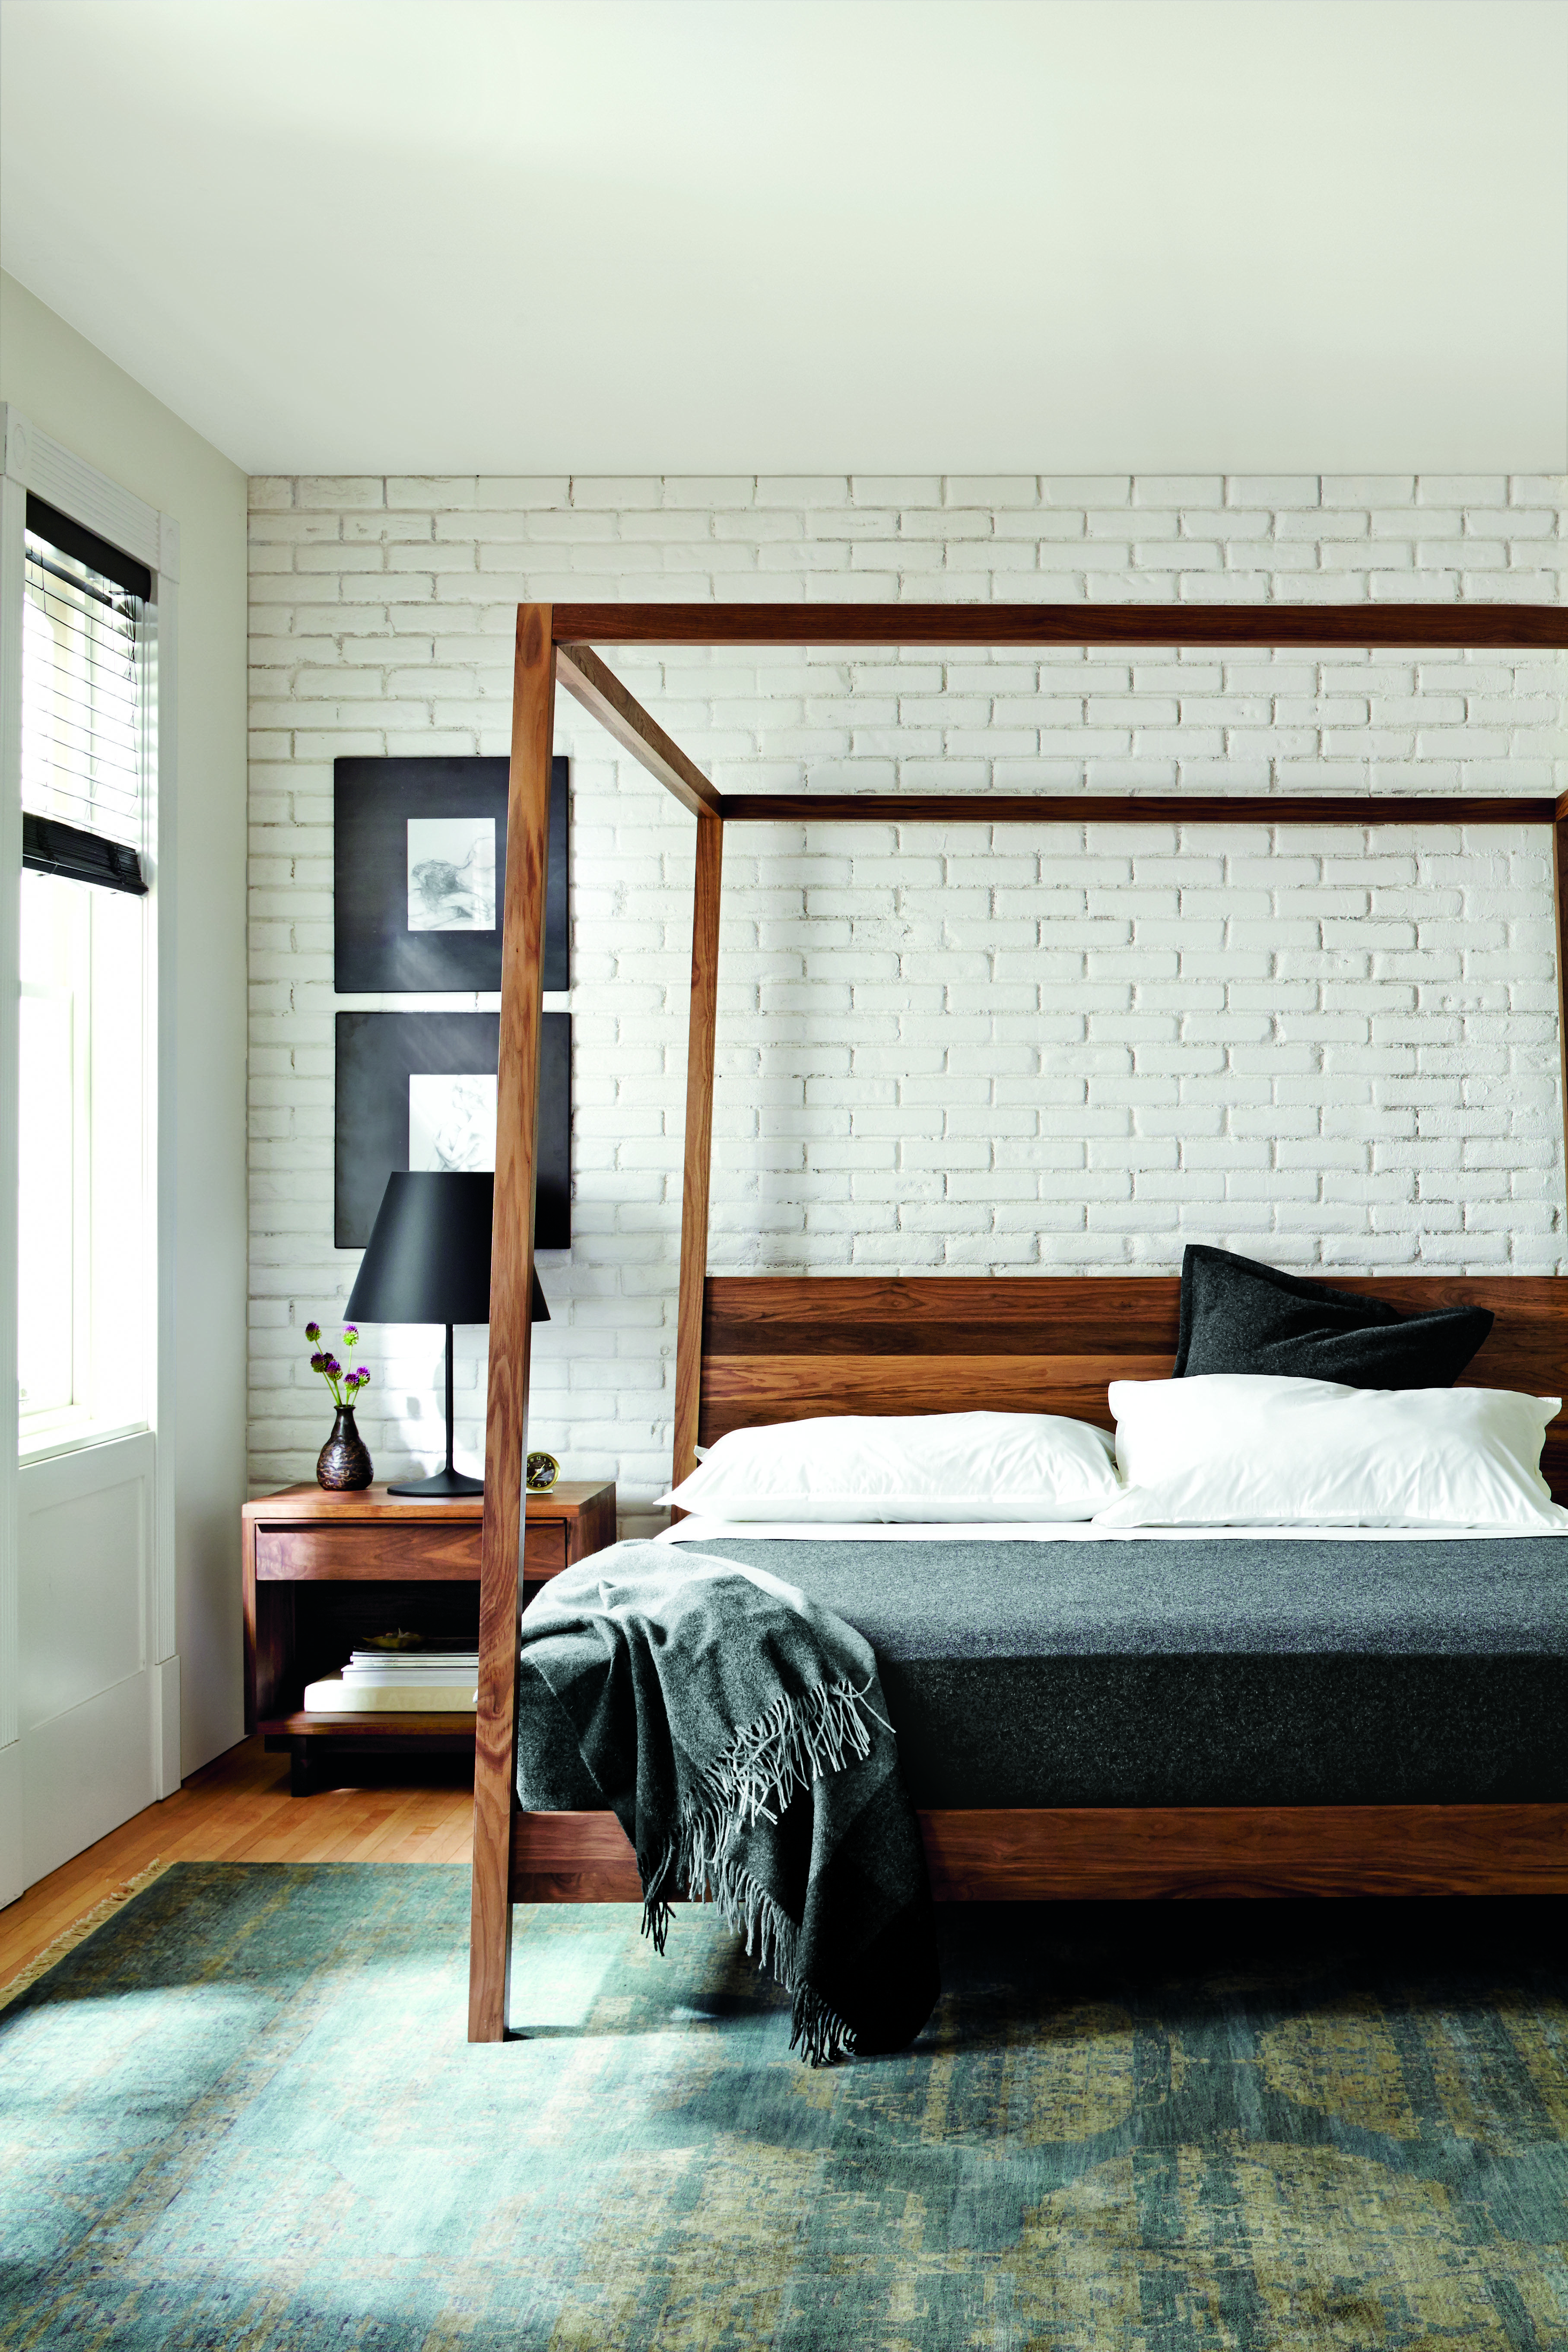 whitewashed brick complements a minimal wooden bed frame in this sleeksimple space. whitewashed brick complements a minimal wooden bed frame in this